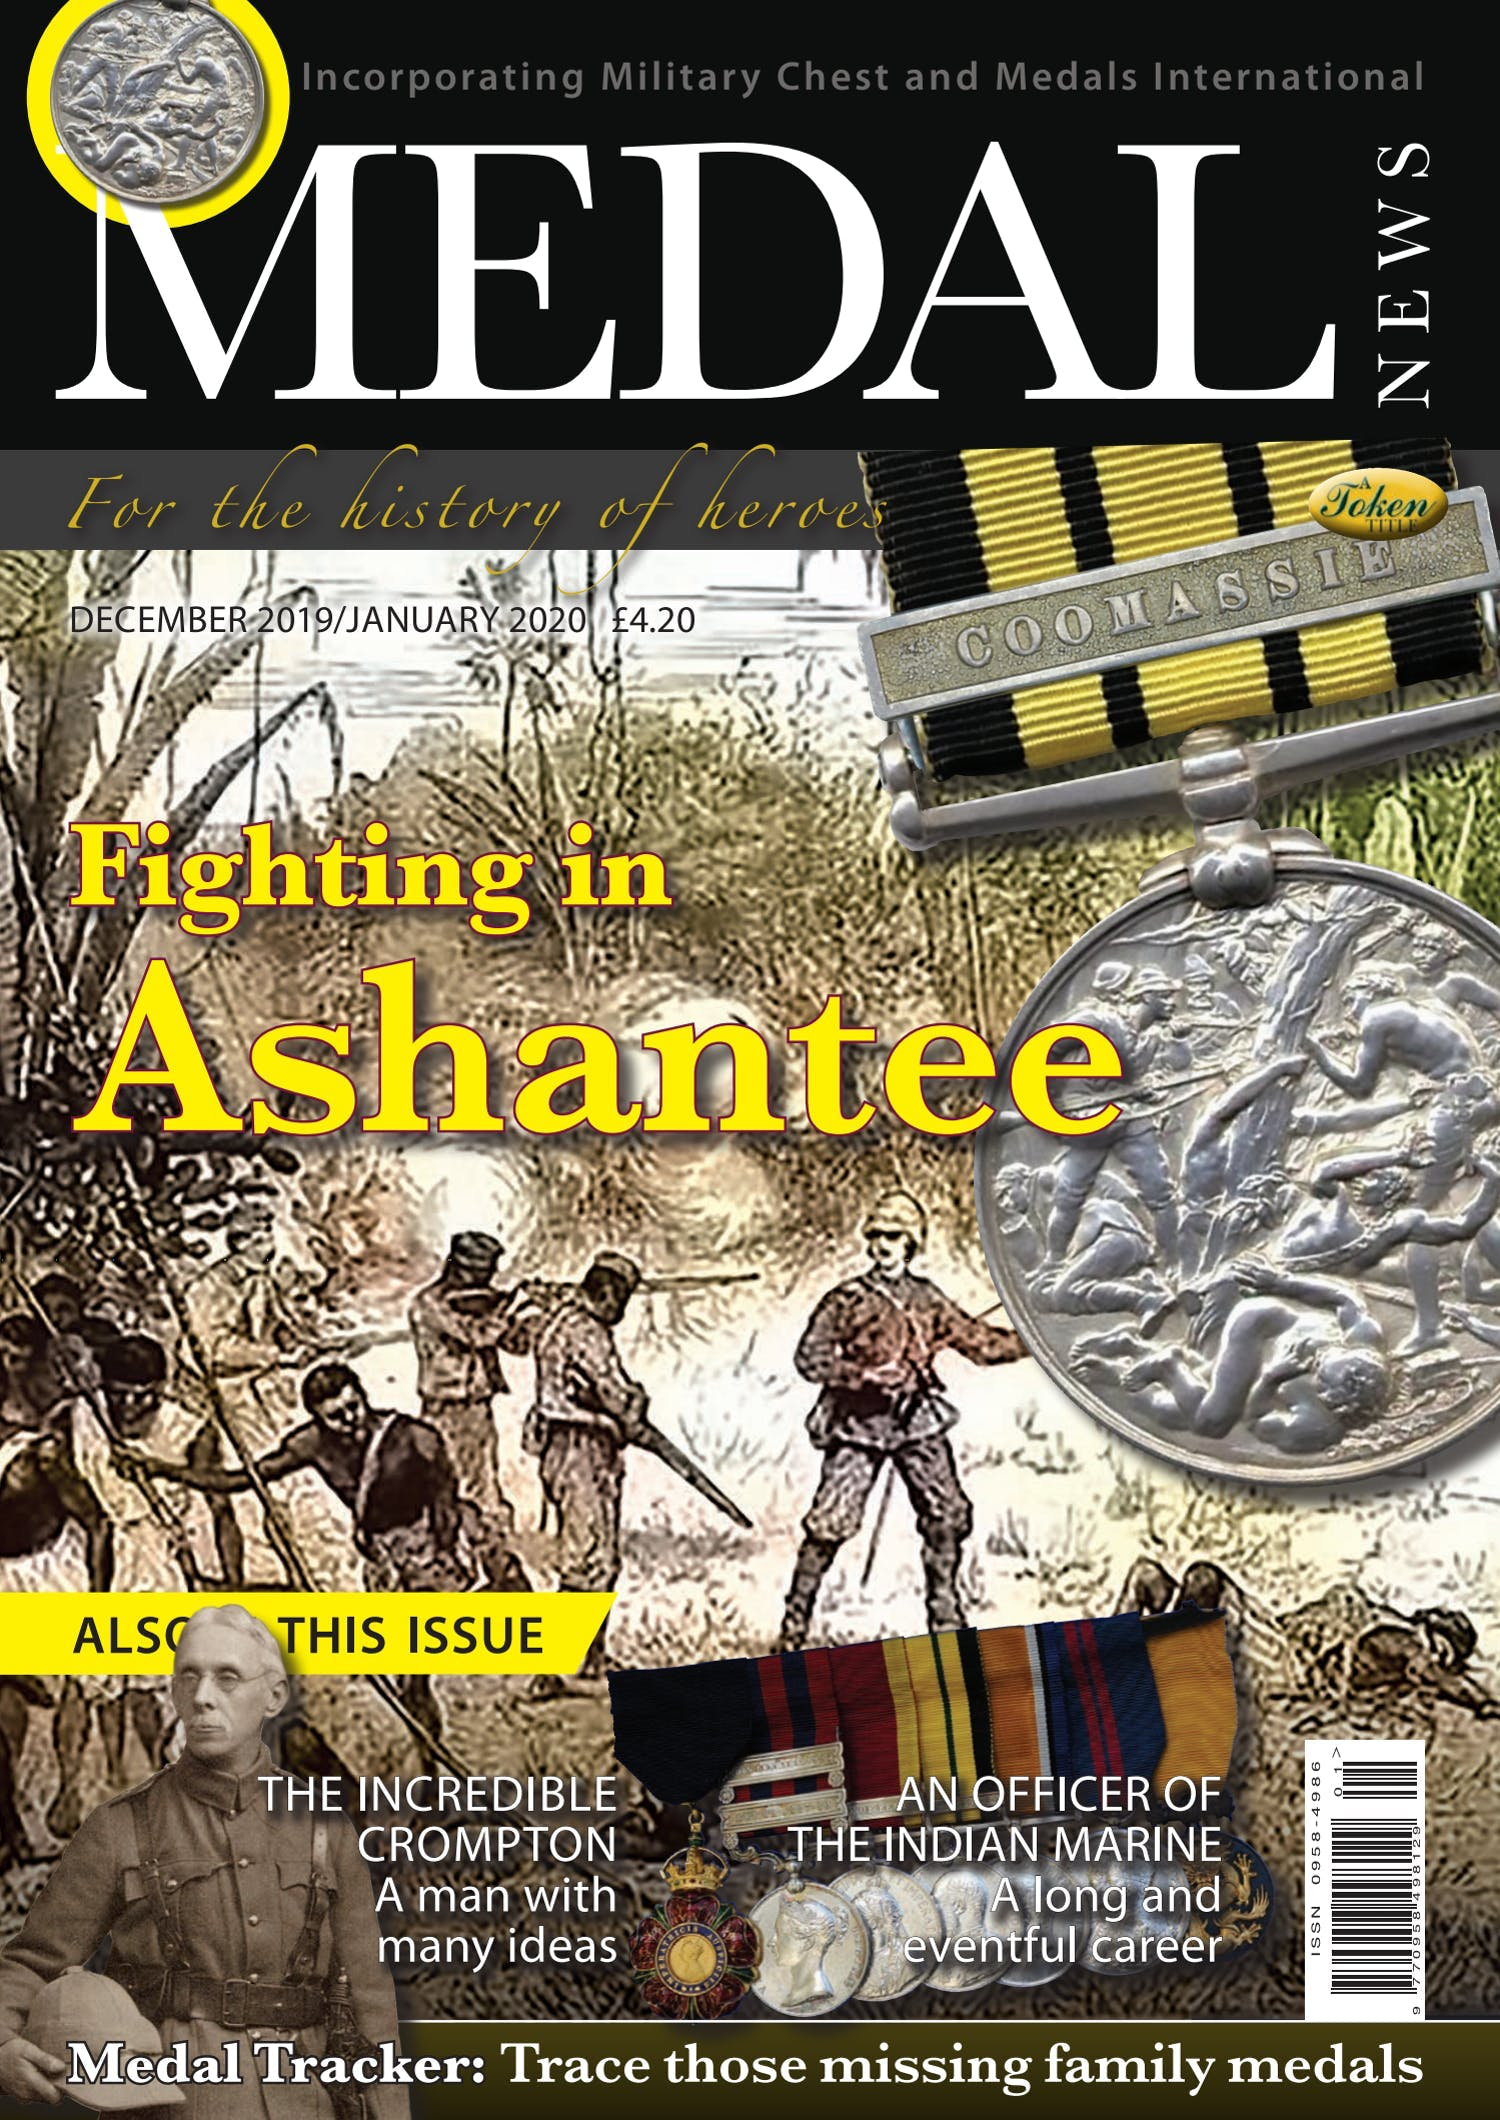 The front cover of Medal News, January 2020 - Volume 58, Number 1